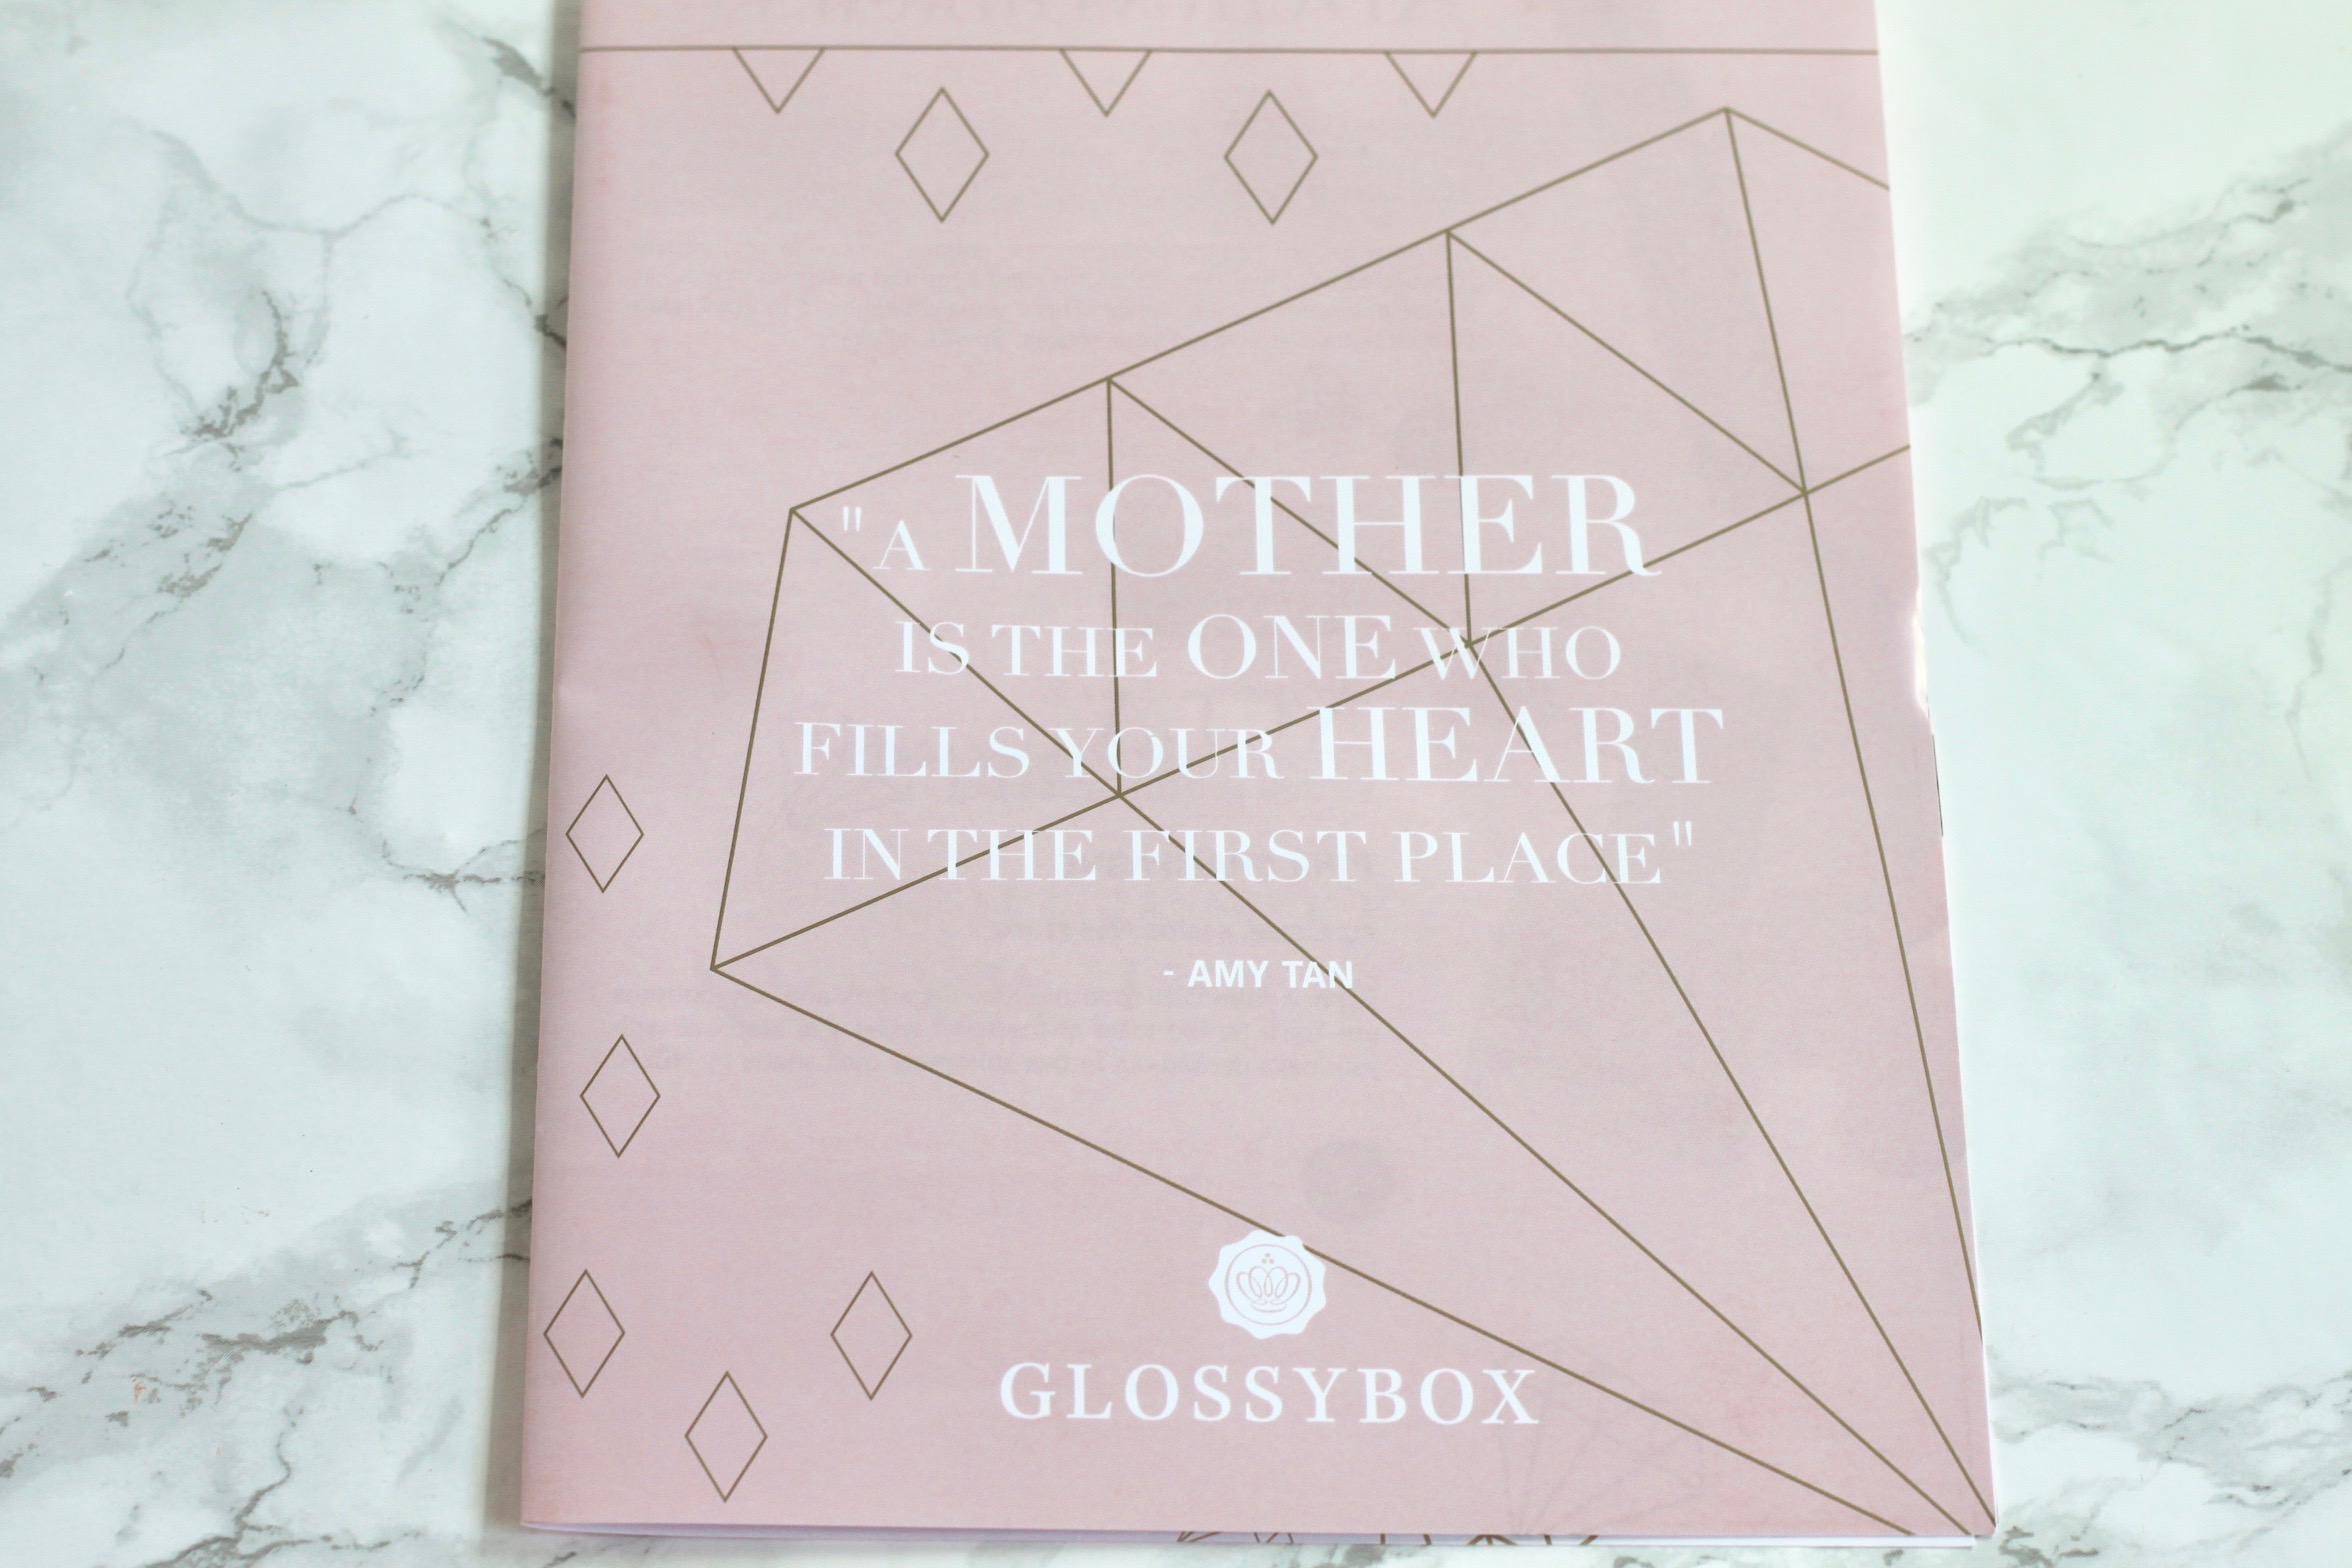 Glossybox Pink Limited Edition Mother's Day Box Review - 2017